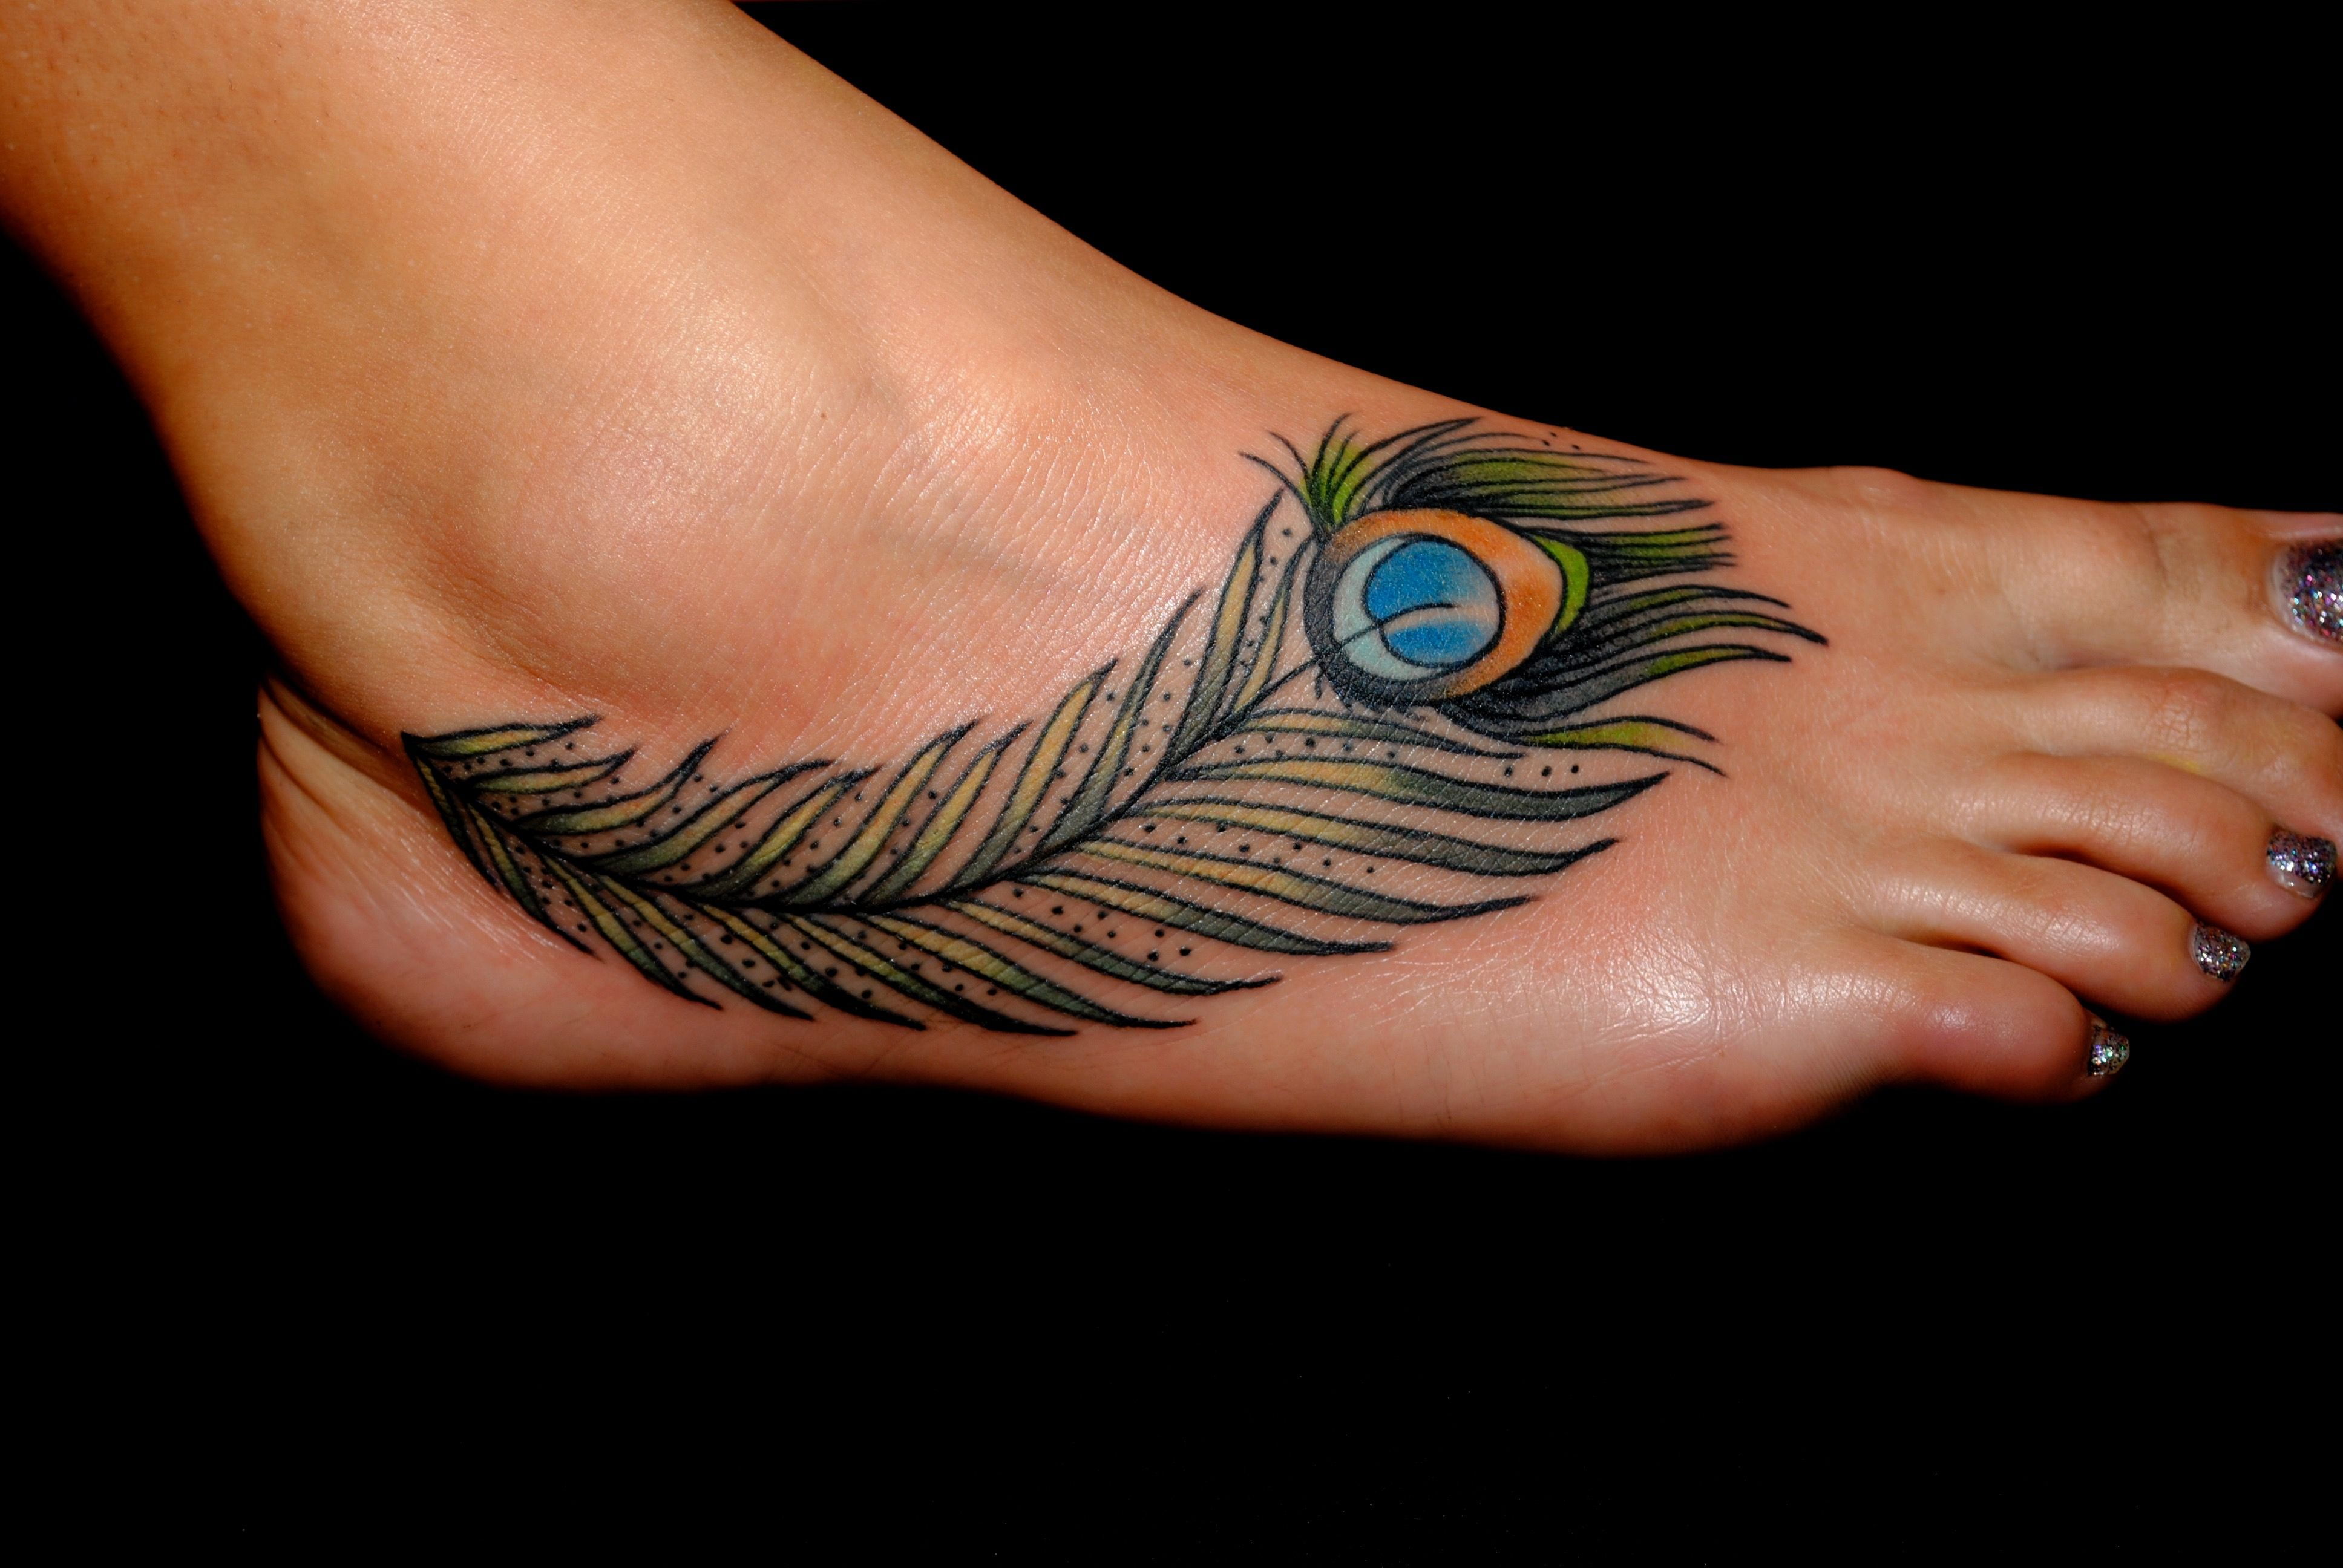 Pin by Tamela on health Lily tattoo design, Tattoos